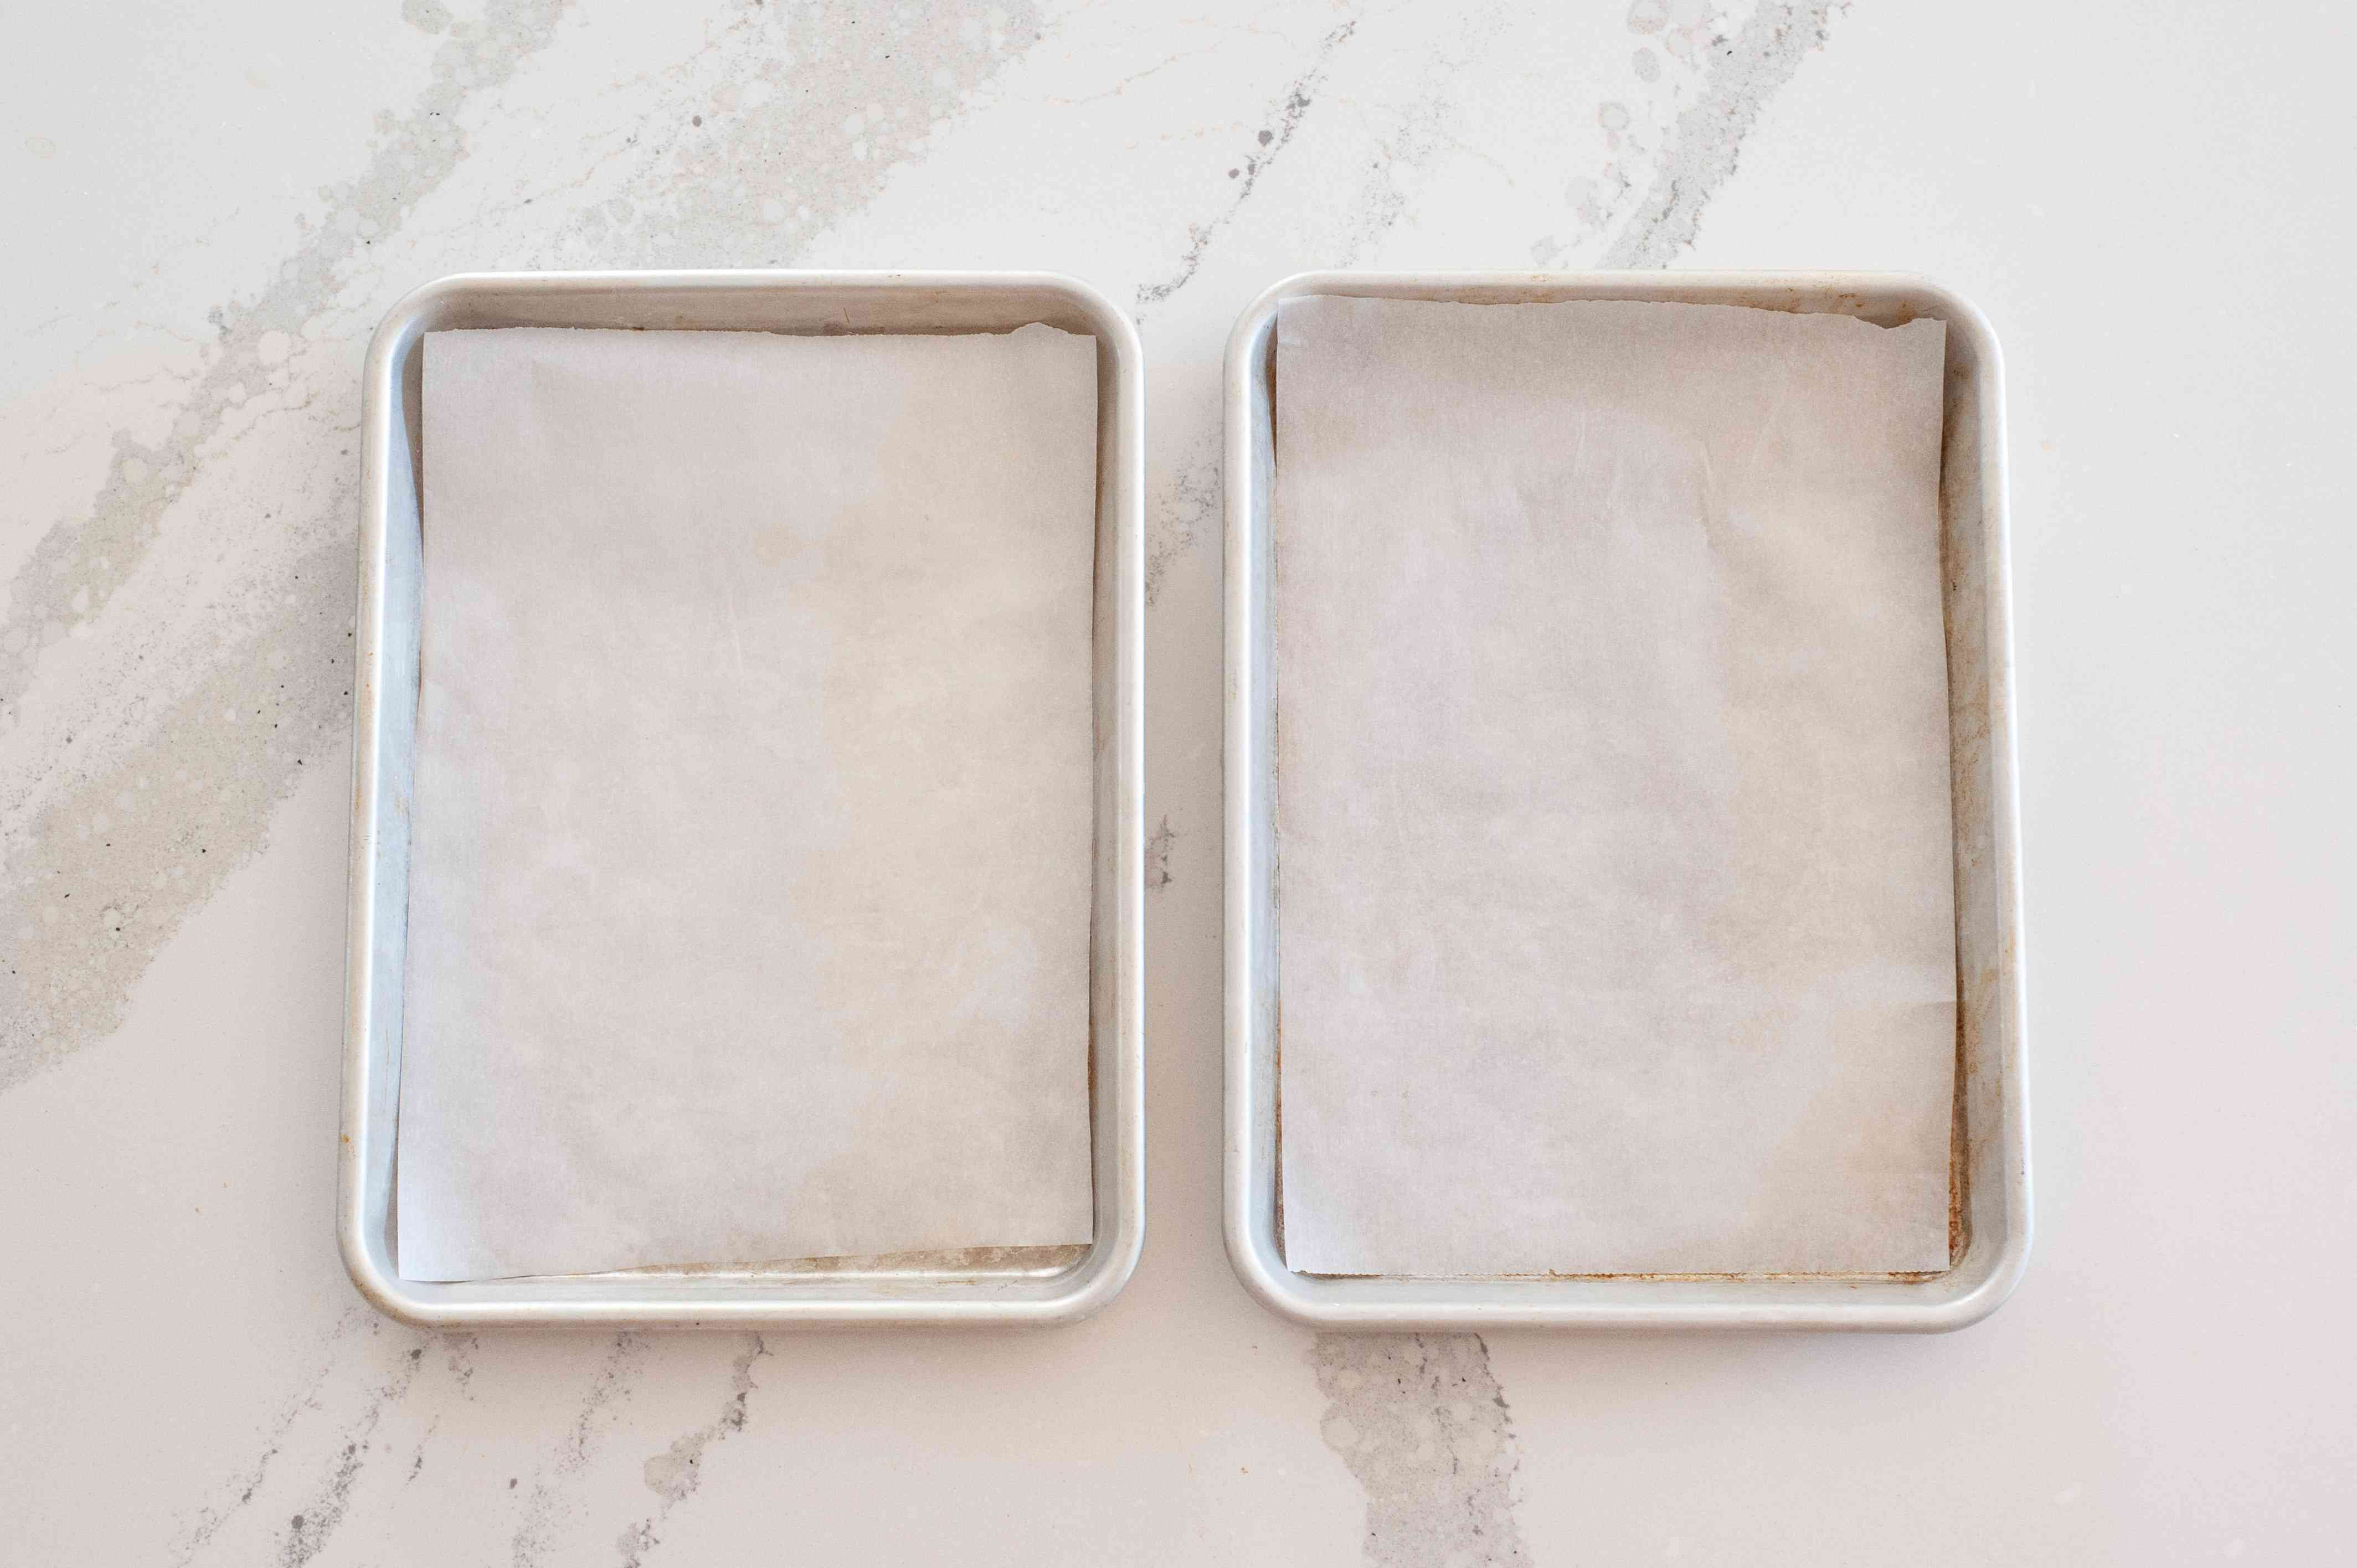 Overhead view of two parchment lined baking sheets.